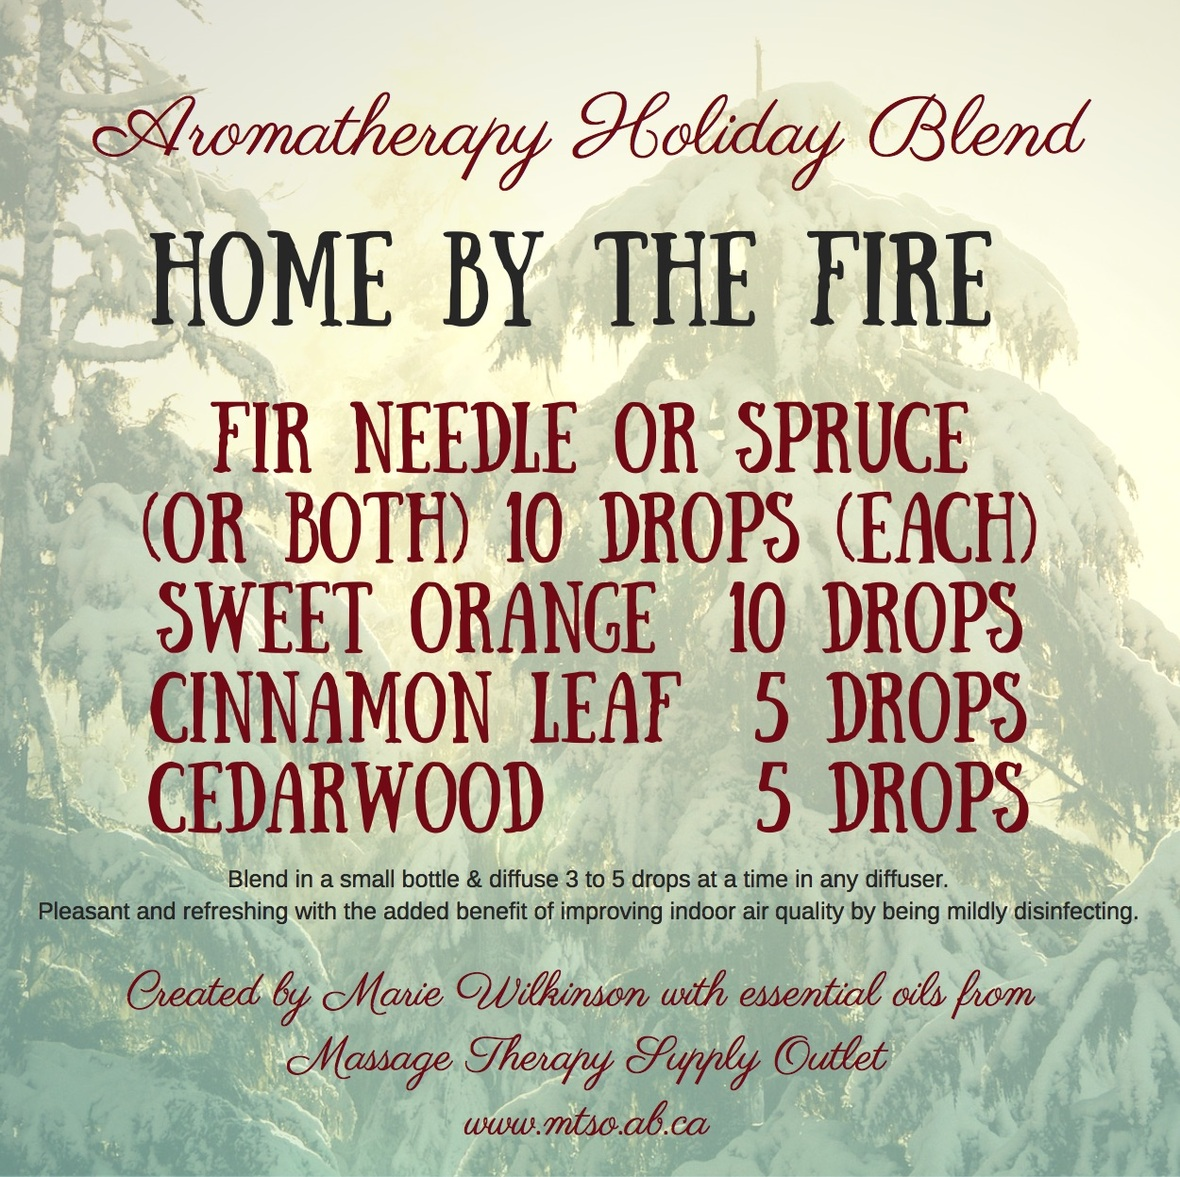 Home by the Fire - essential oils from MTSO